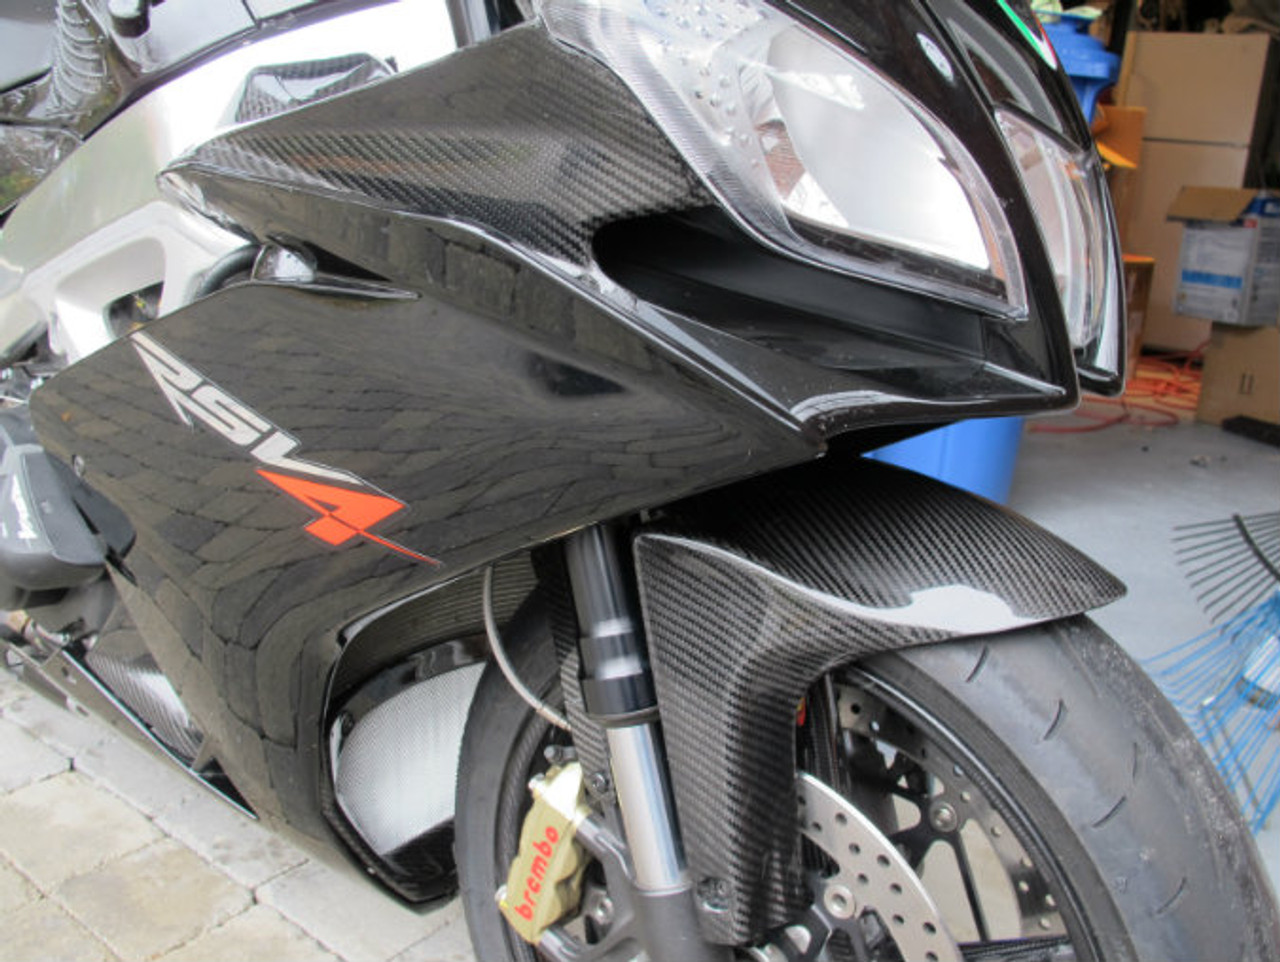 Glossy Twill Weave Carbon Fiber Front Fender for Aprilia RSV4 2009+, Tuono V4 2011+ installed